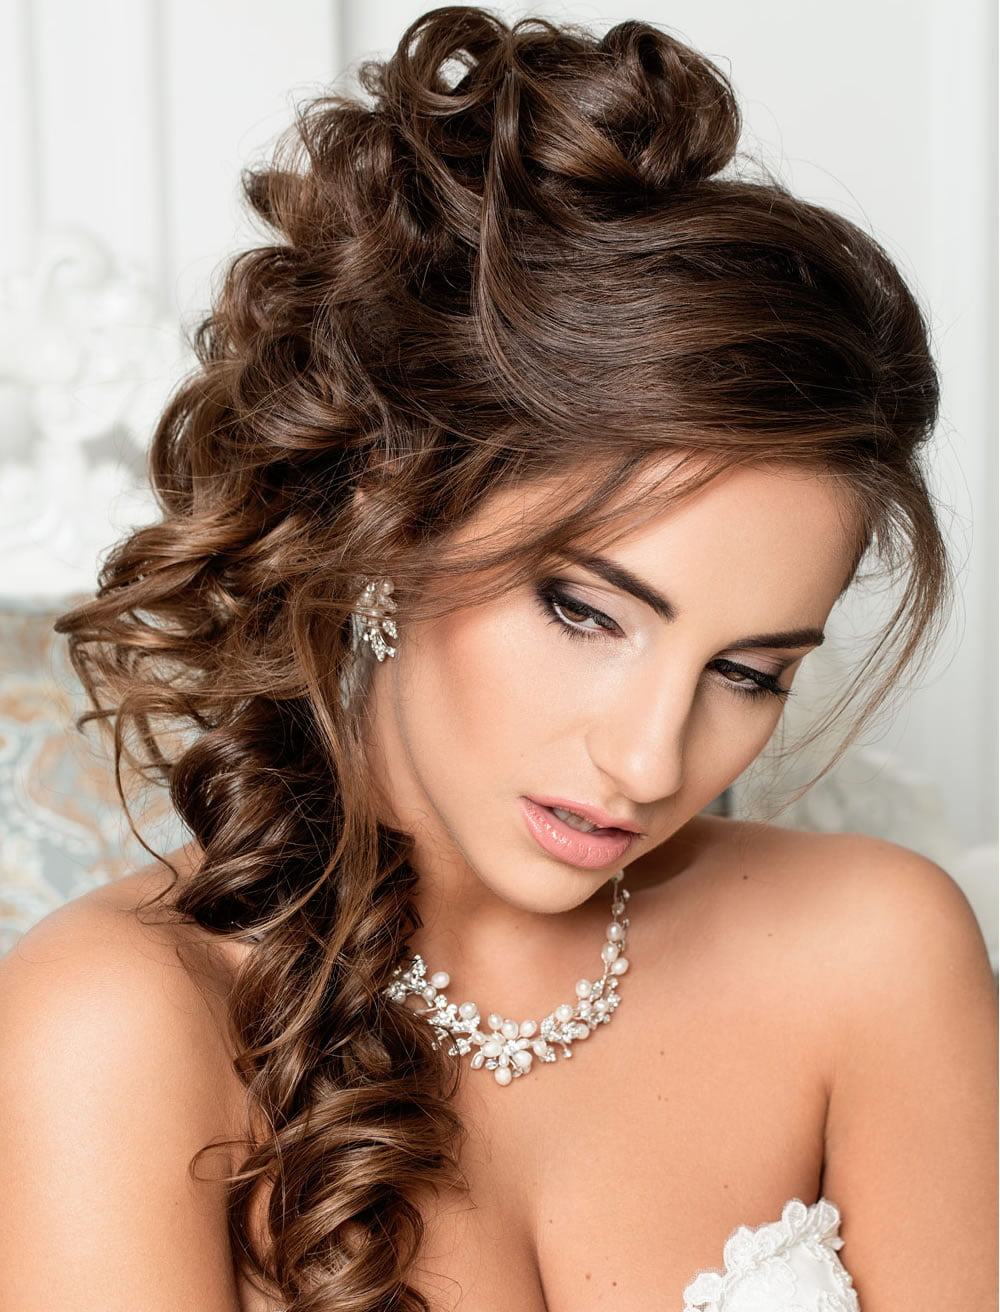 Very Stylish Wedding Hairstyles for Long Hair 2018-2019 – HAIRSTYLES